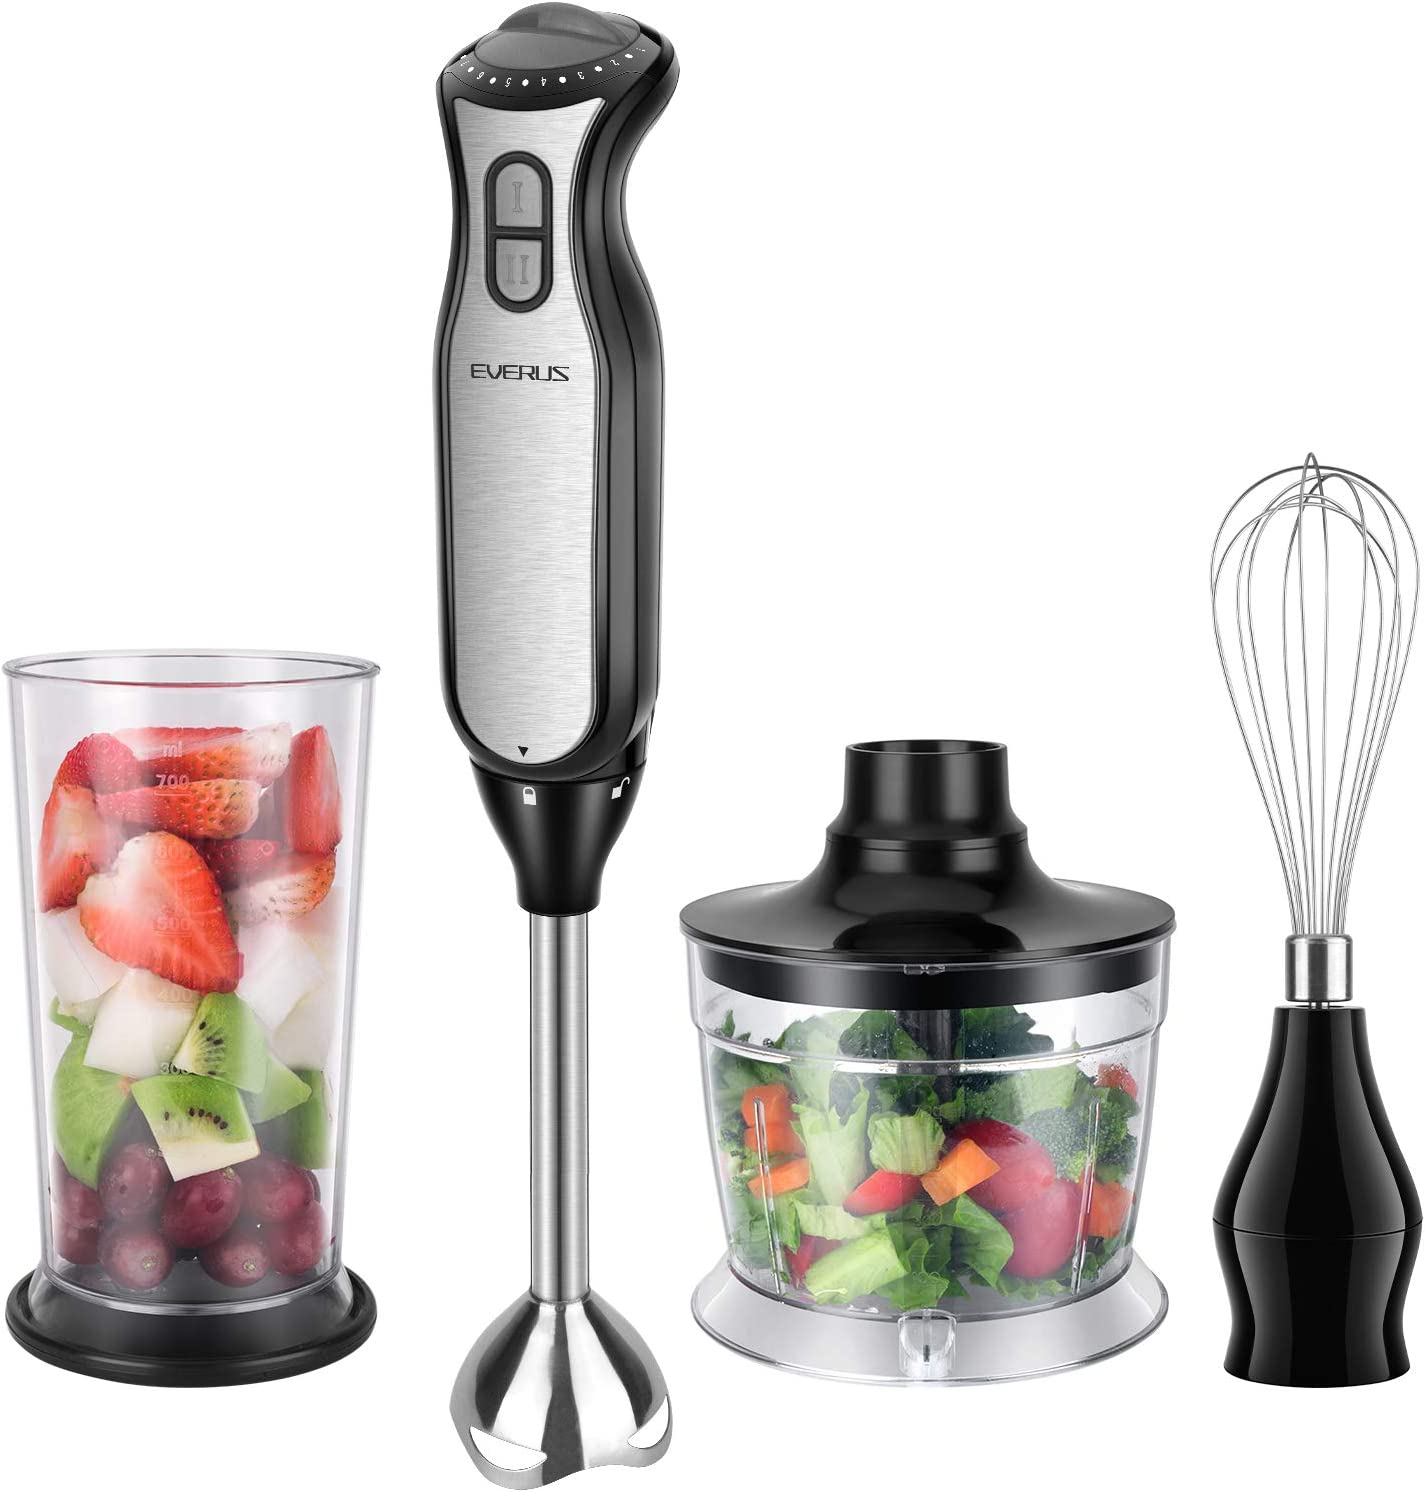 Immersion Hand Blender EVERUS 4-in-1 Hand Blender Stick with 700ml Food Chopper, 700ml Mixing Beaker, Stainless Steel Whisk, 8 Speeds Handheld Immersion Blender for Baby Food, Soup, BPA Free, 400W, Black&Sliver